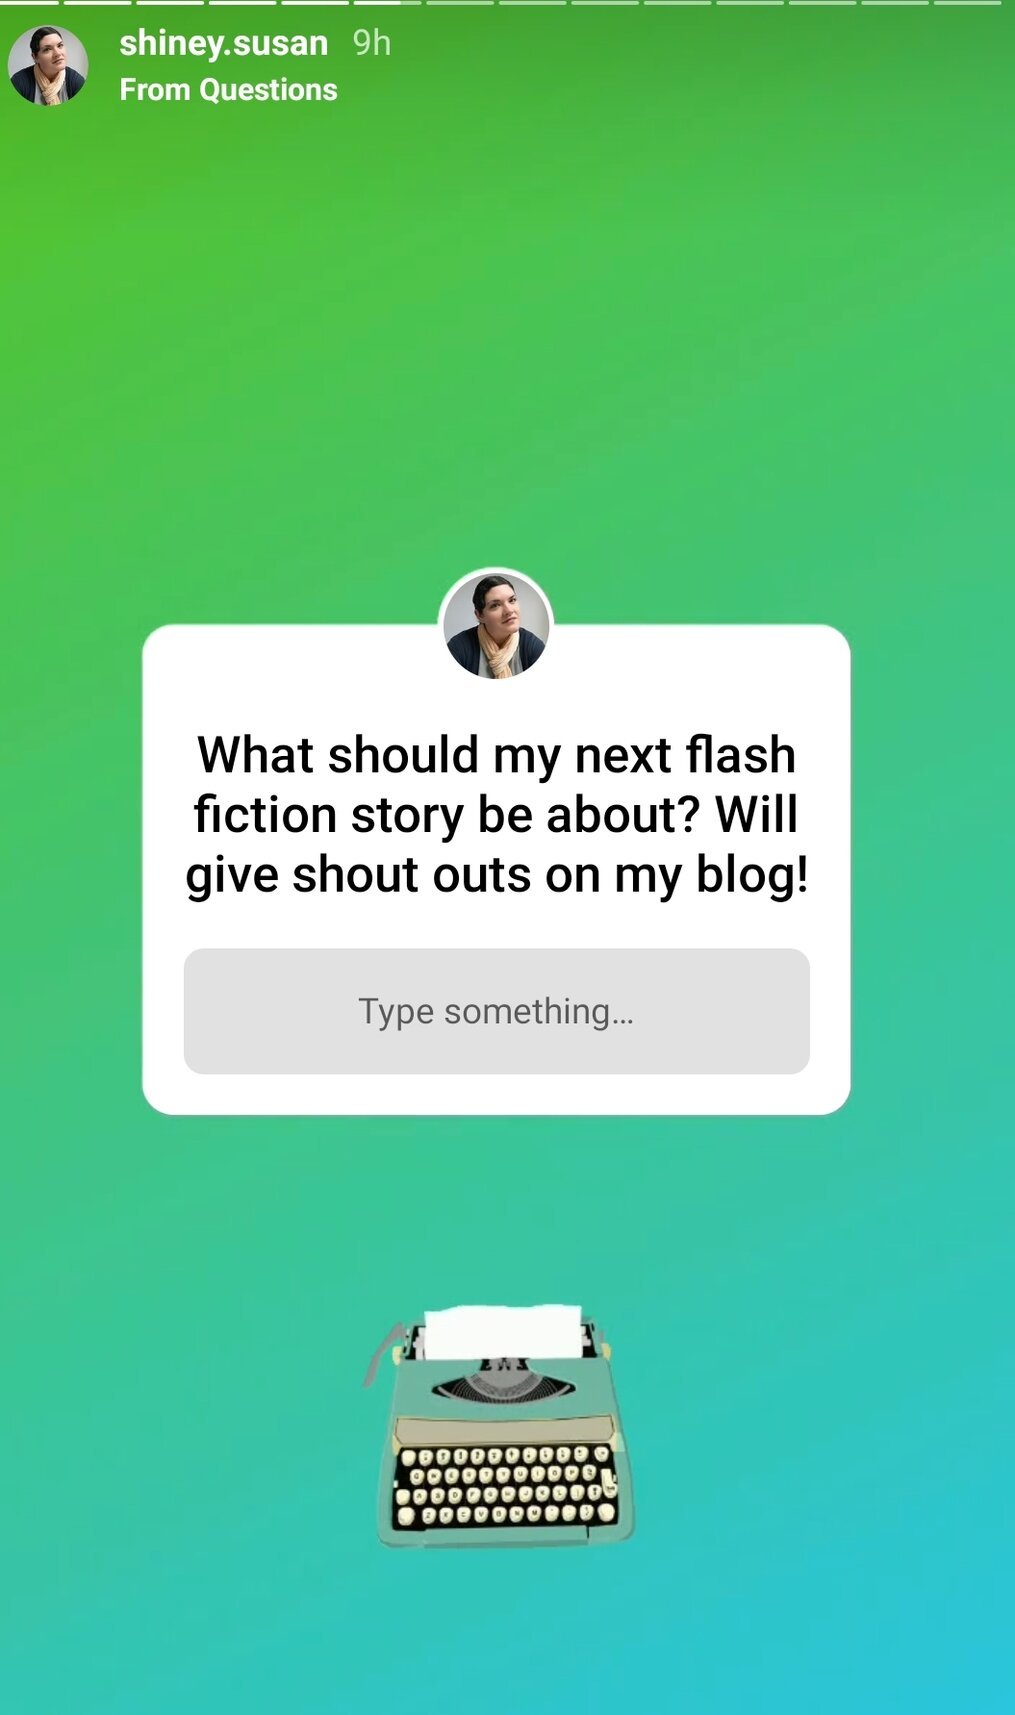 Instagram-Story-Question-to-readers-for-a-prompt-fantasy-Halloween-Story-Kombucha-Keyboardist-pied-piper-retelling-fairy-tale-susan-shiney-fantasy